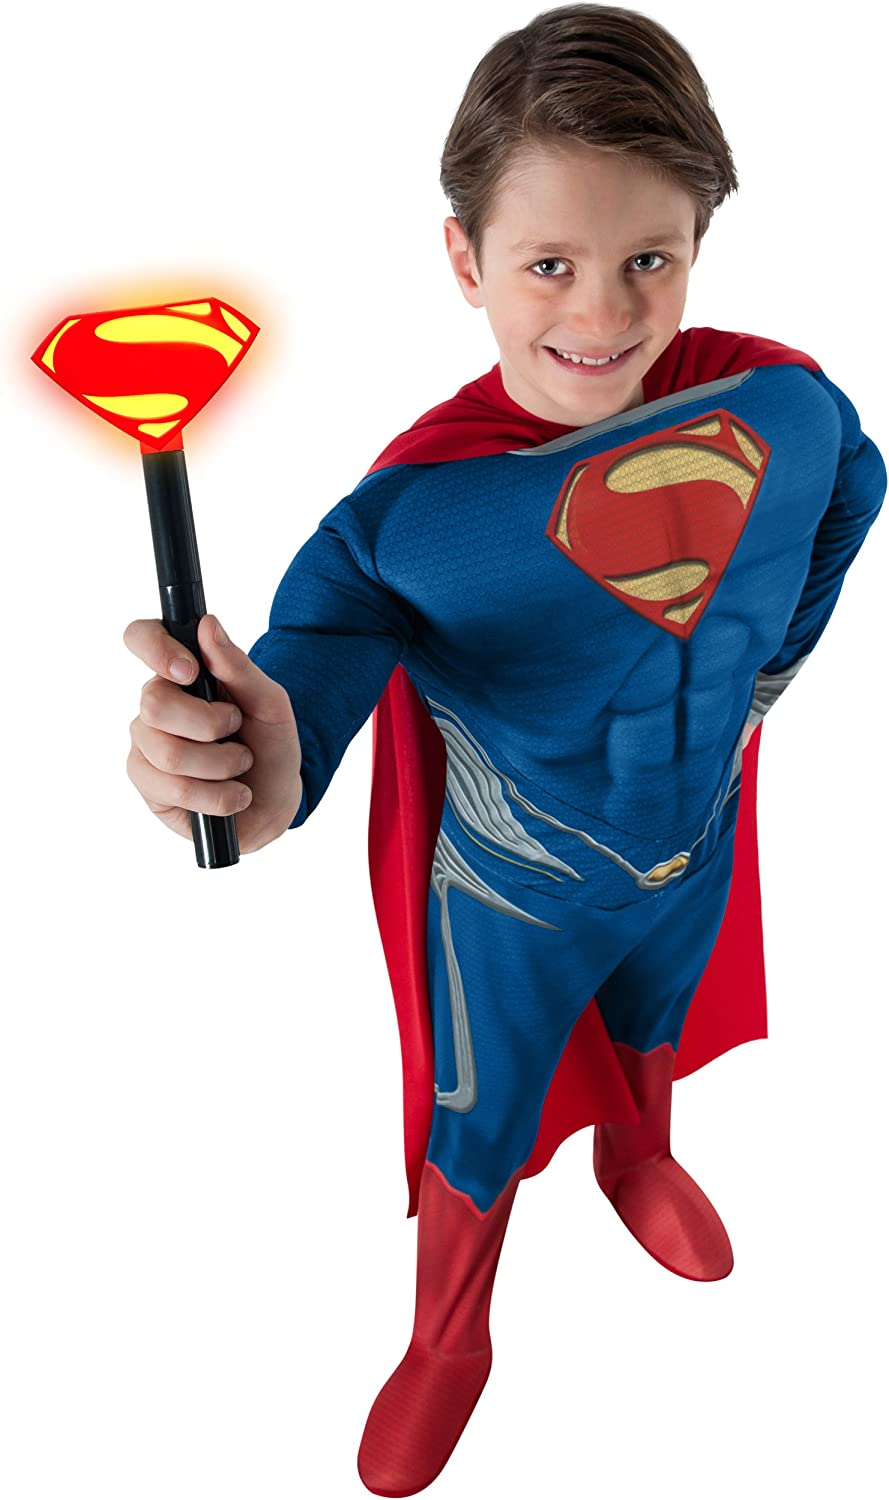 Rubies Superman Man of Steel Trick-or-Treat Pail